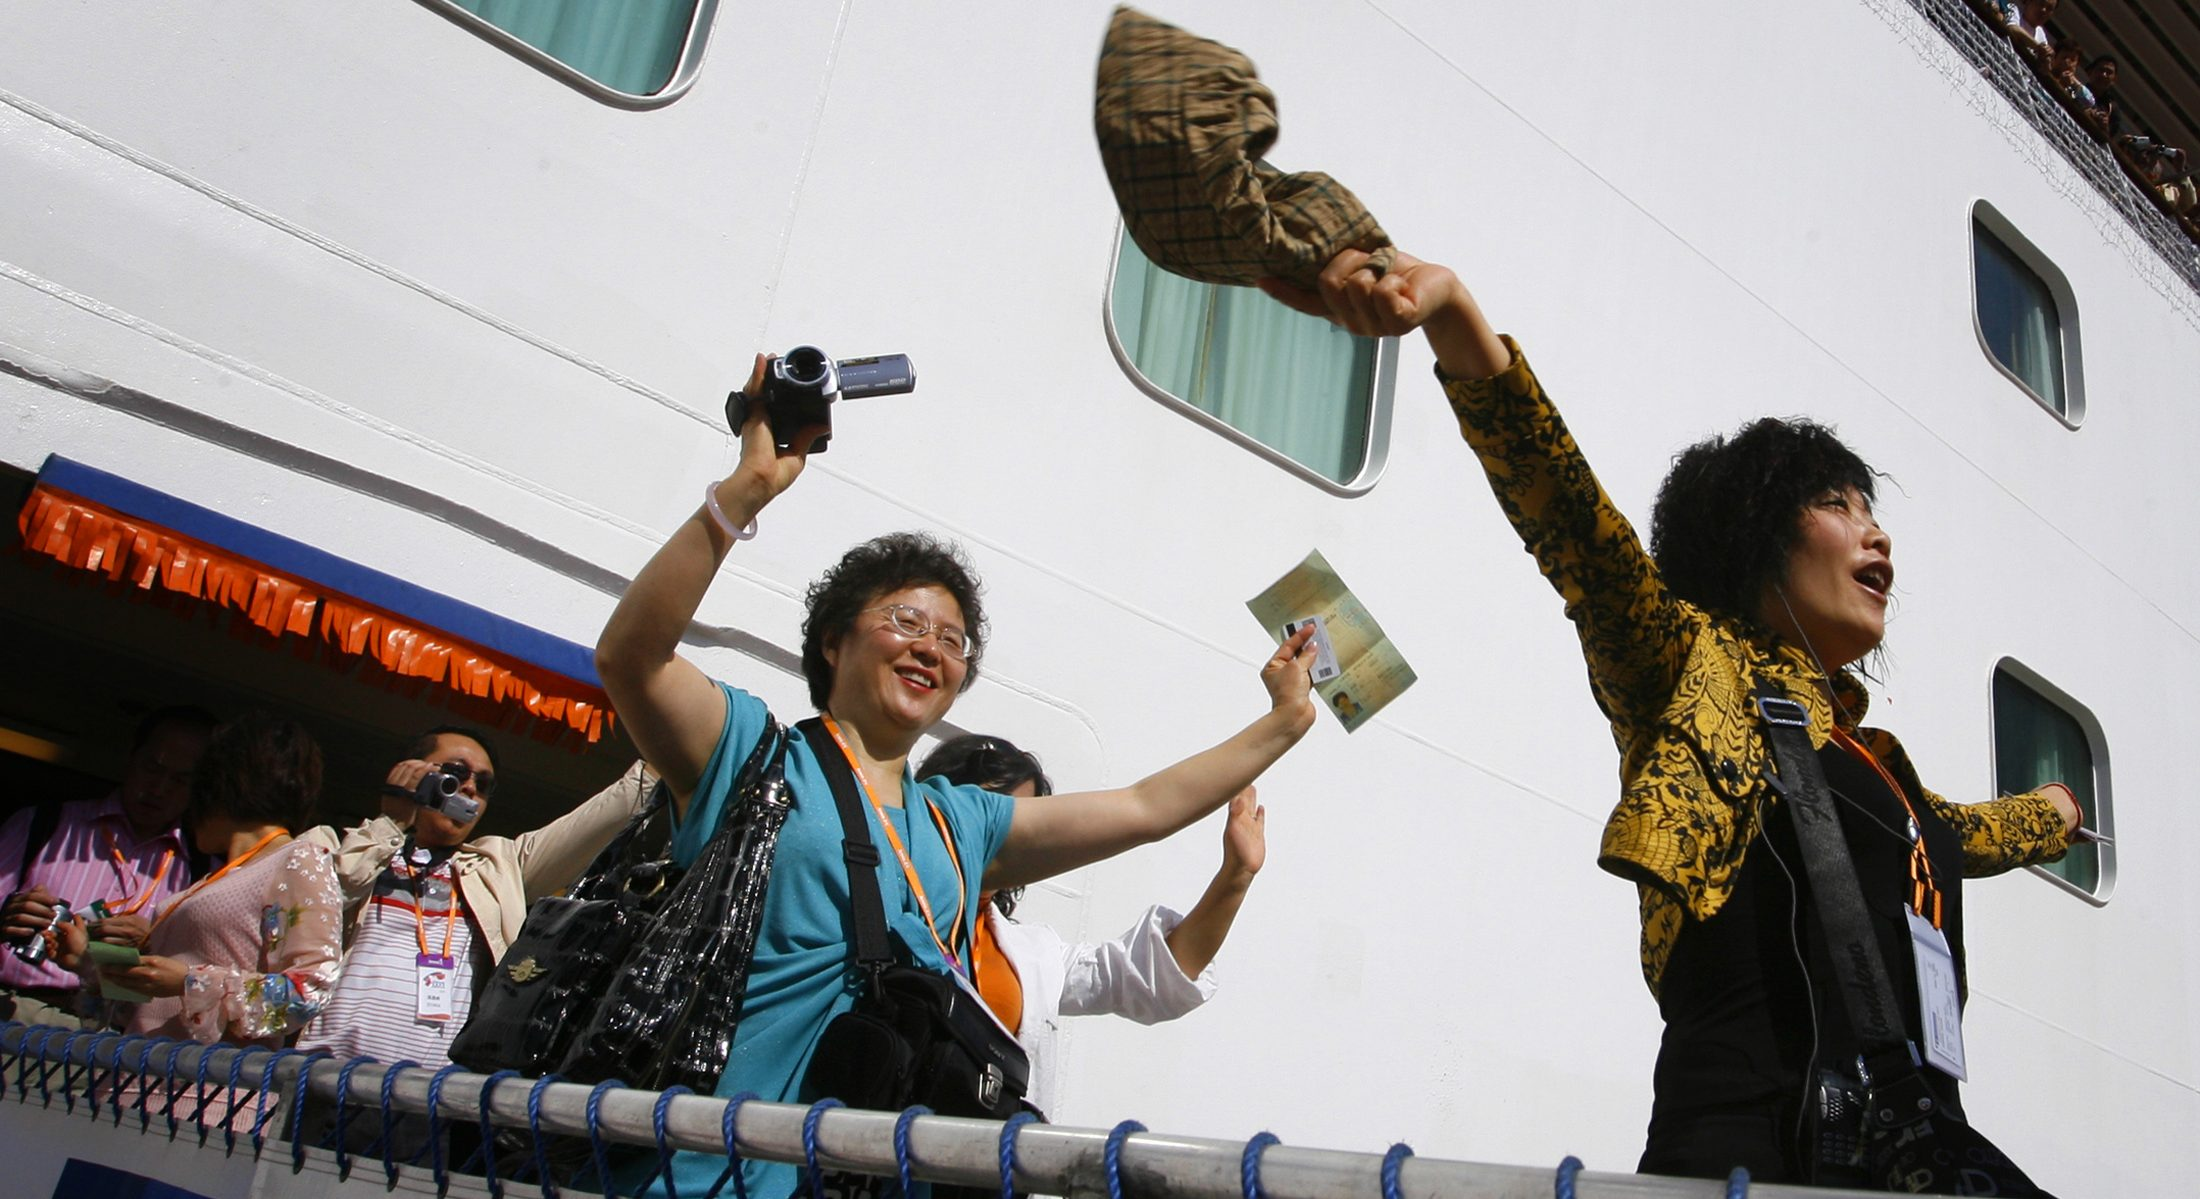 Tourists from China wave as they arrive on a cruise ship in the northern Taiwan port of Keelung, March 16, 2009.